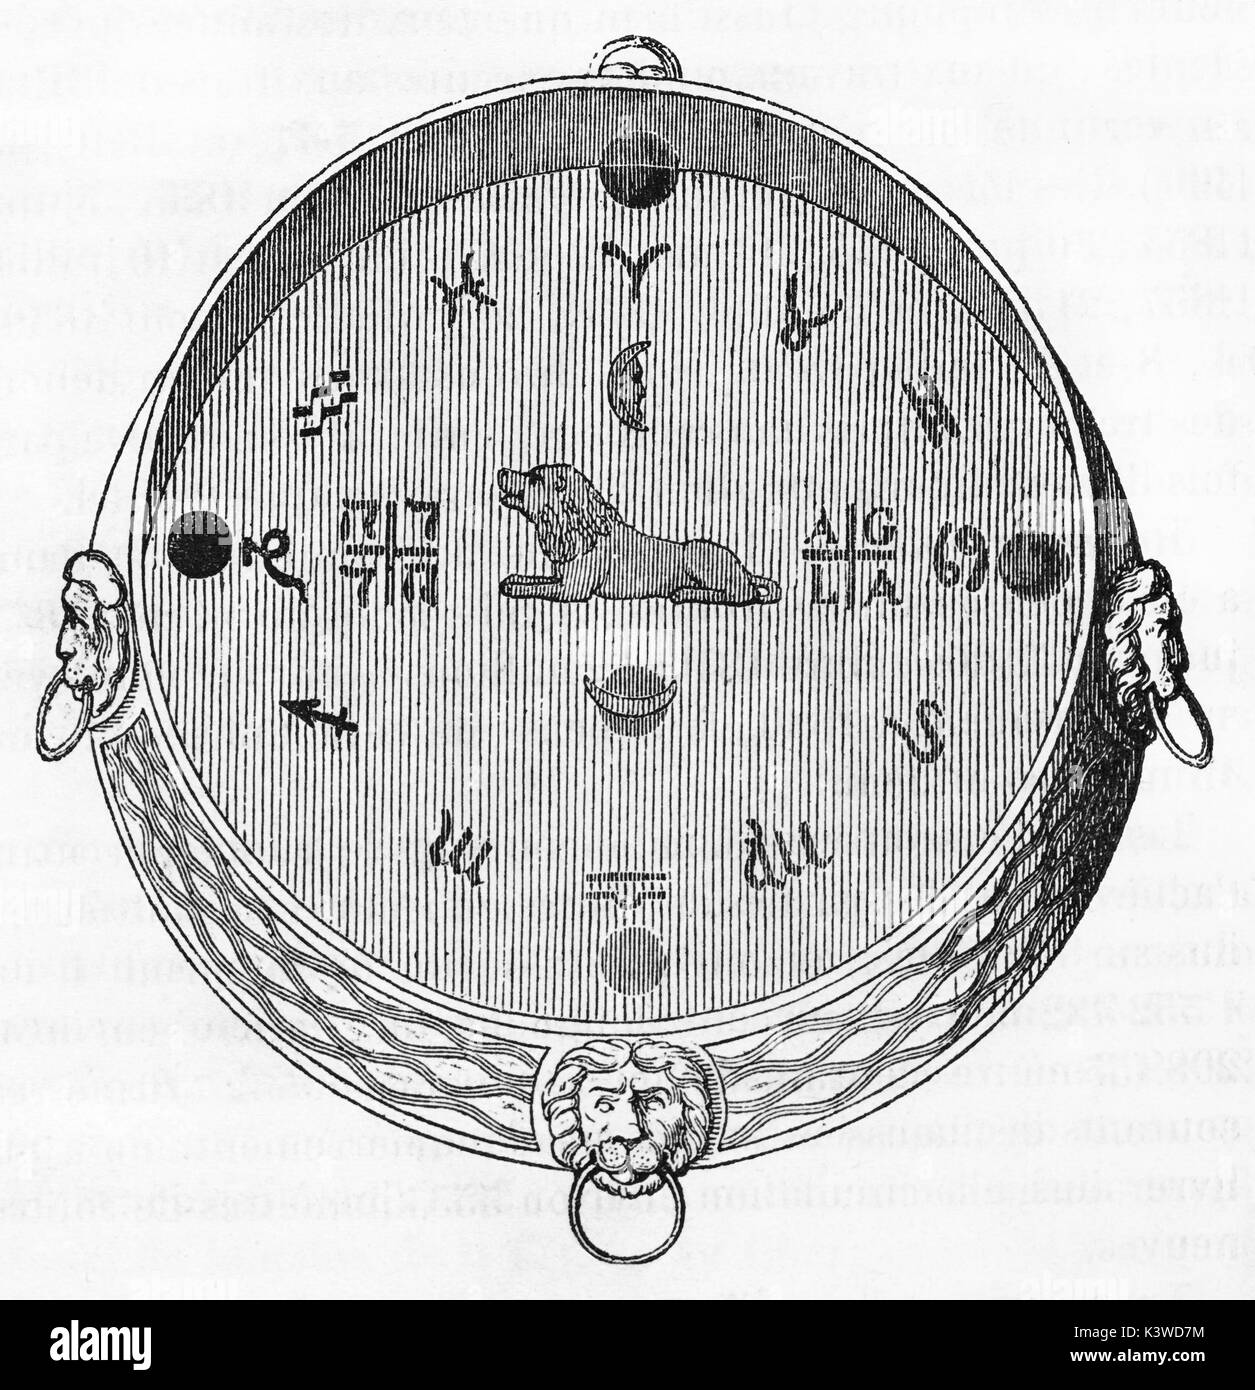 Old illustration of  Albrecht vonWalklenstein horoscope amulet by Kepler. By unidentified author, published on Magasin Pittoresque, Paris, 1841 - Stock Image